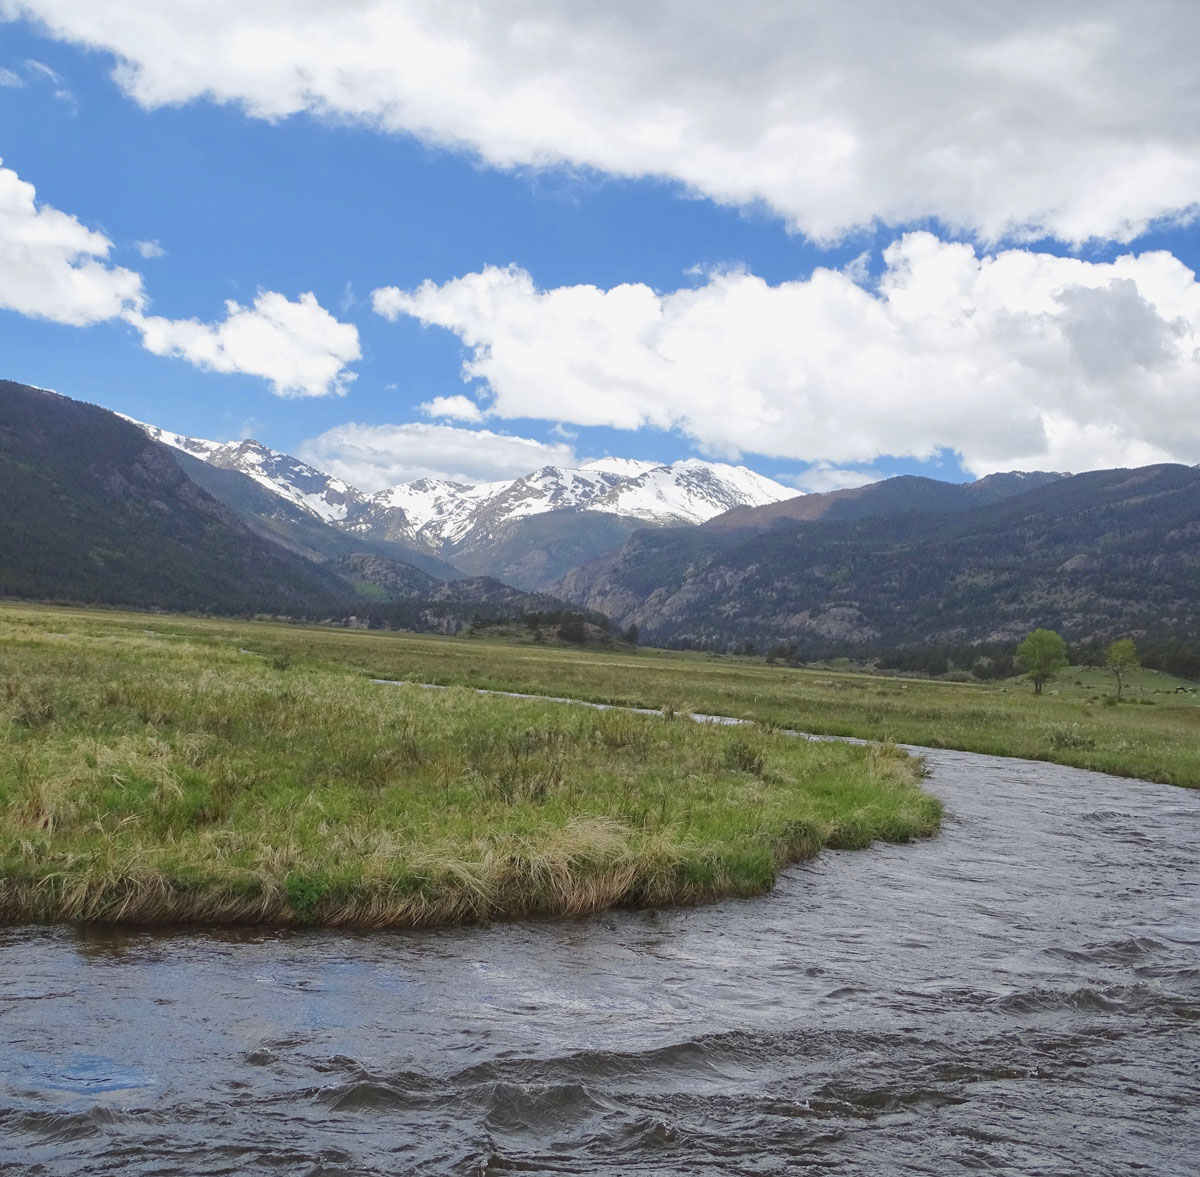 stream in foreground, mountain with snow in background